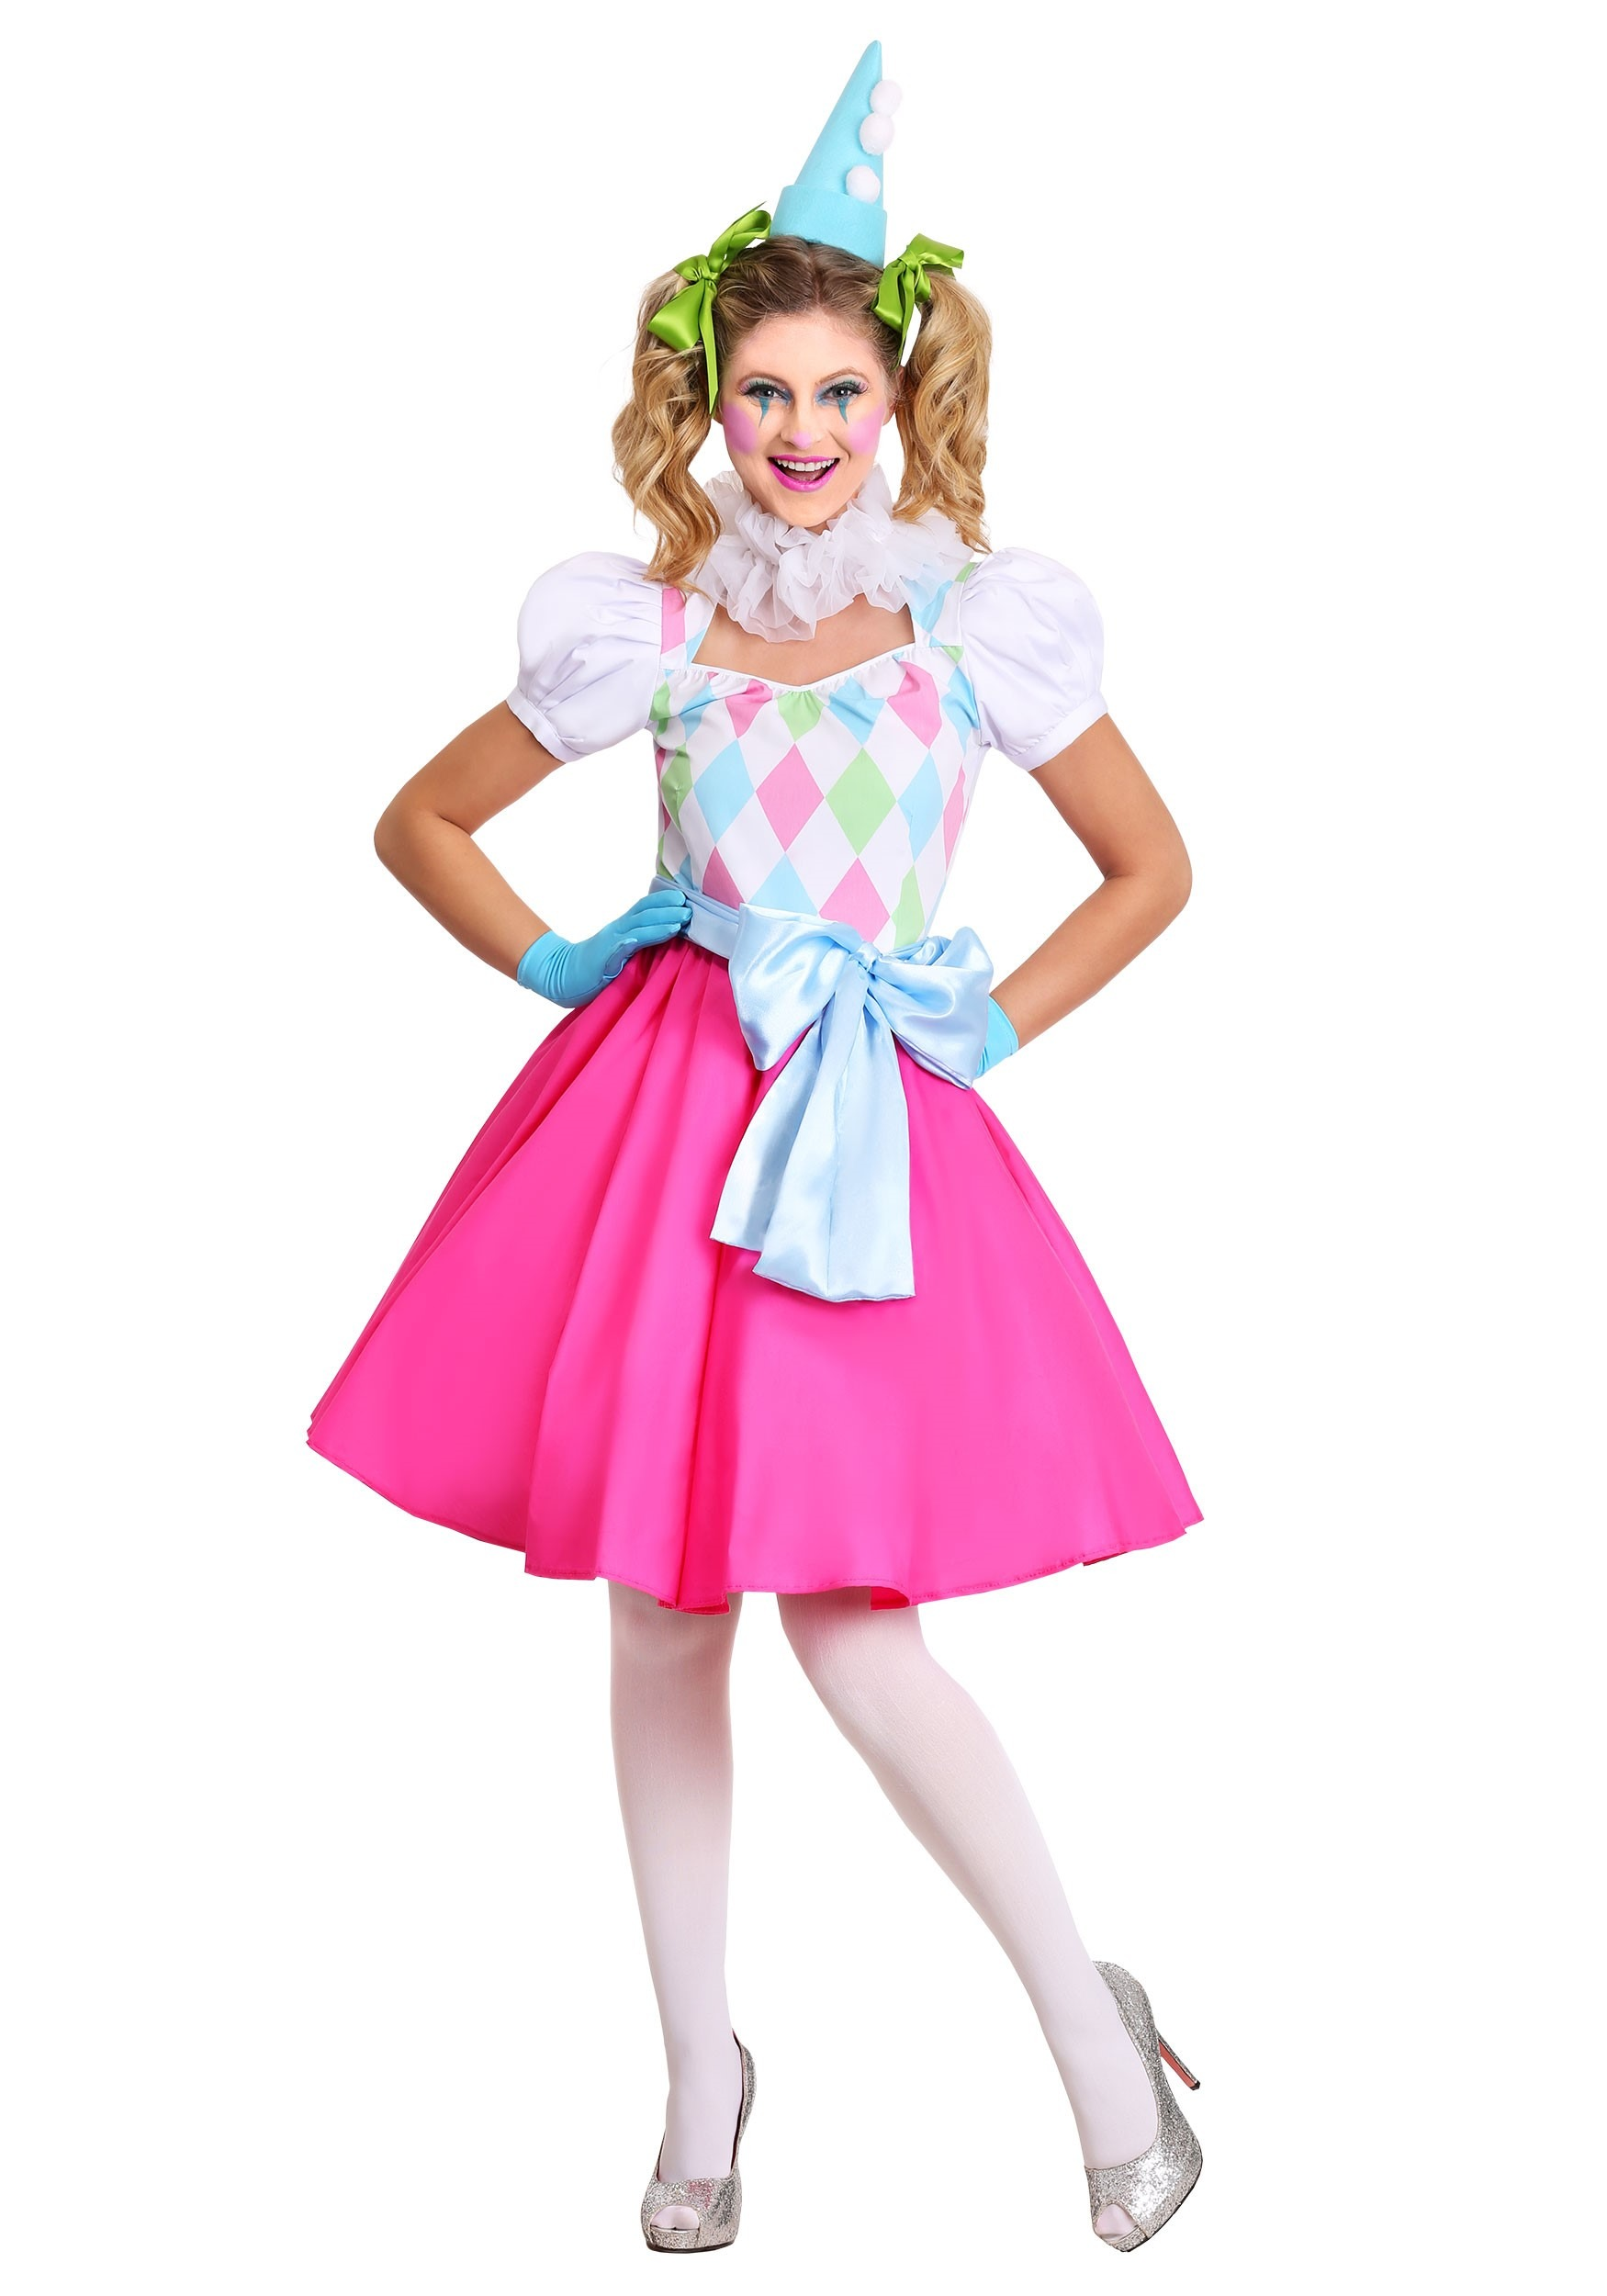 Cotton Candy Clown Costume For Women-9305